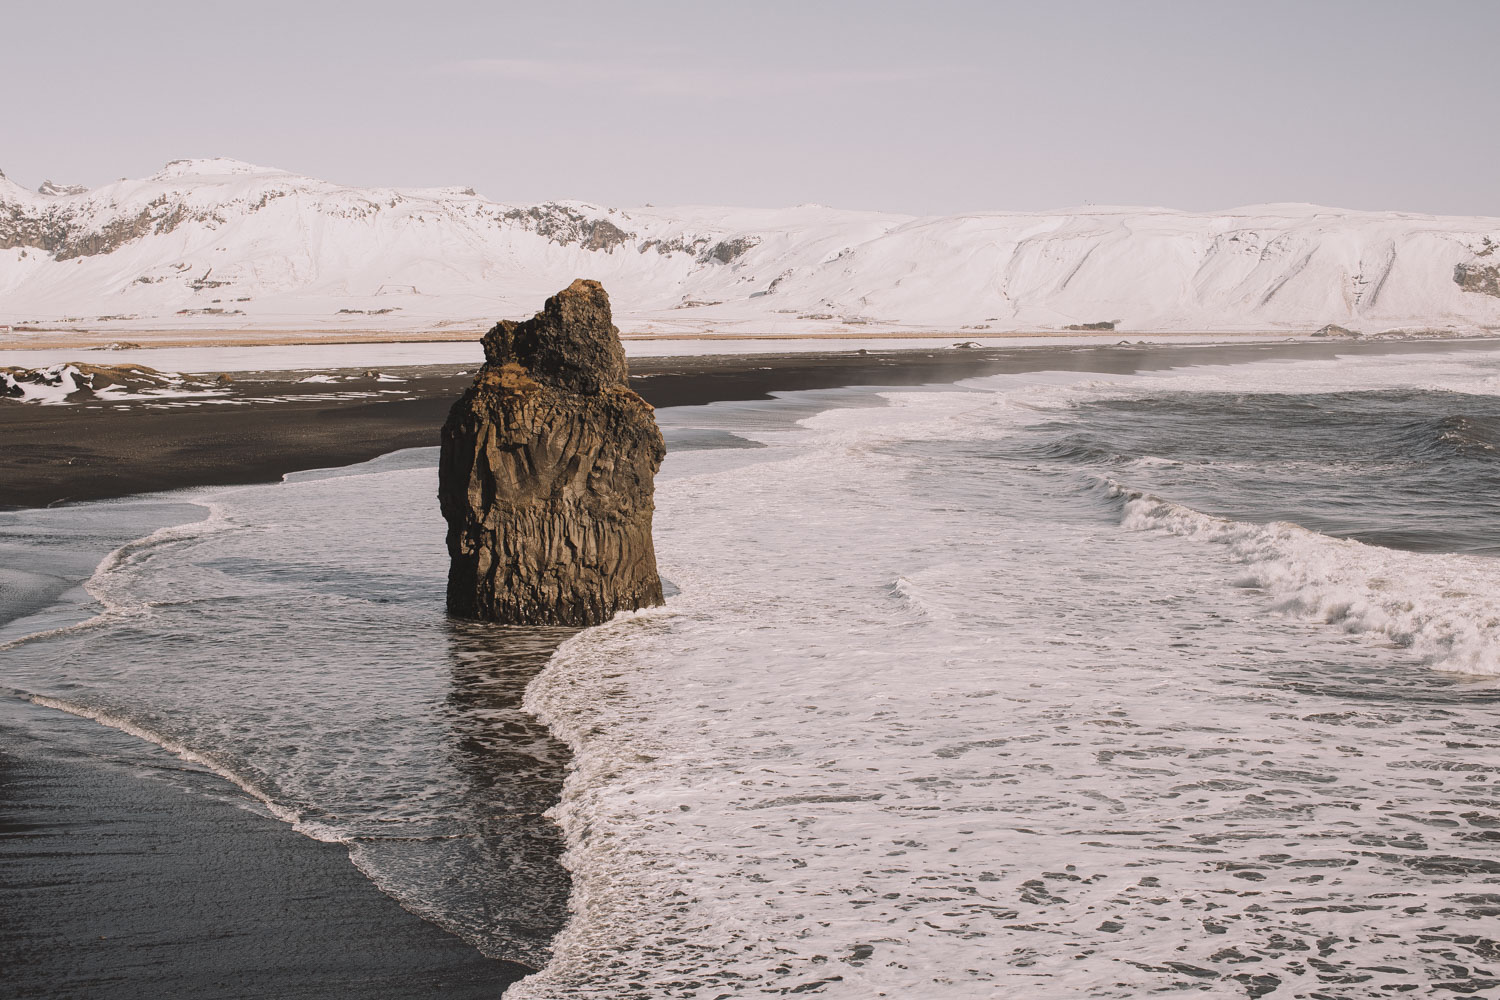 Iceland - A road trip between friends